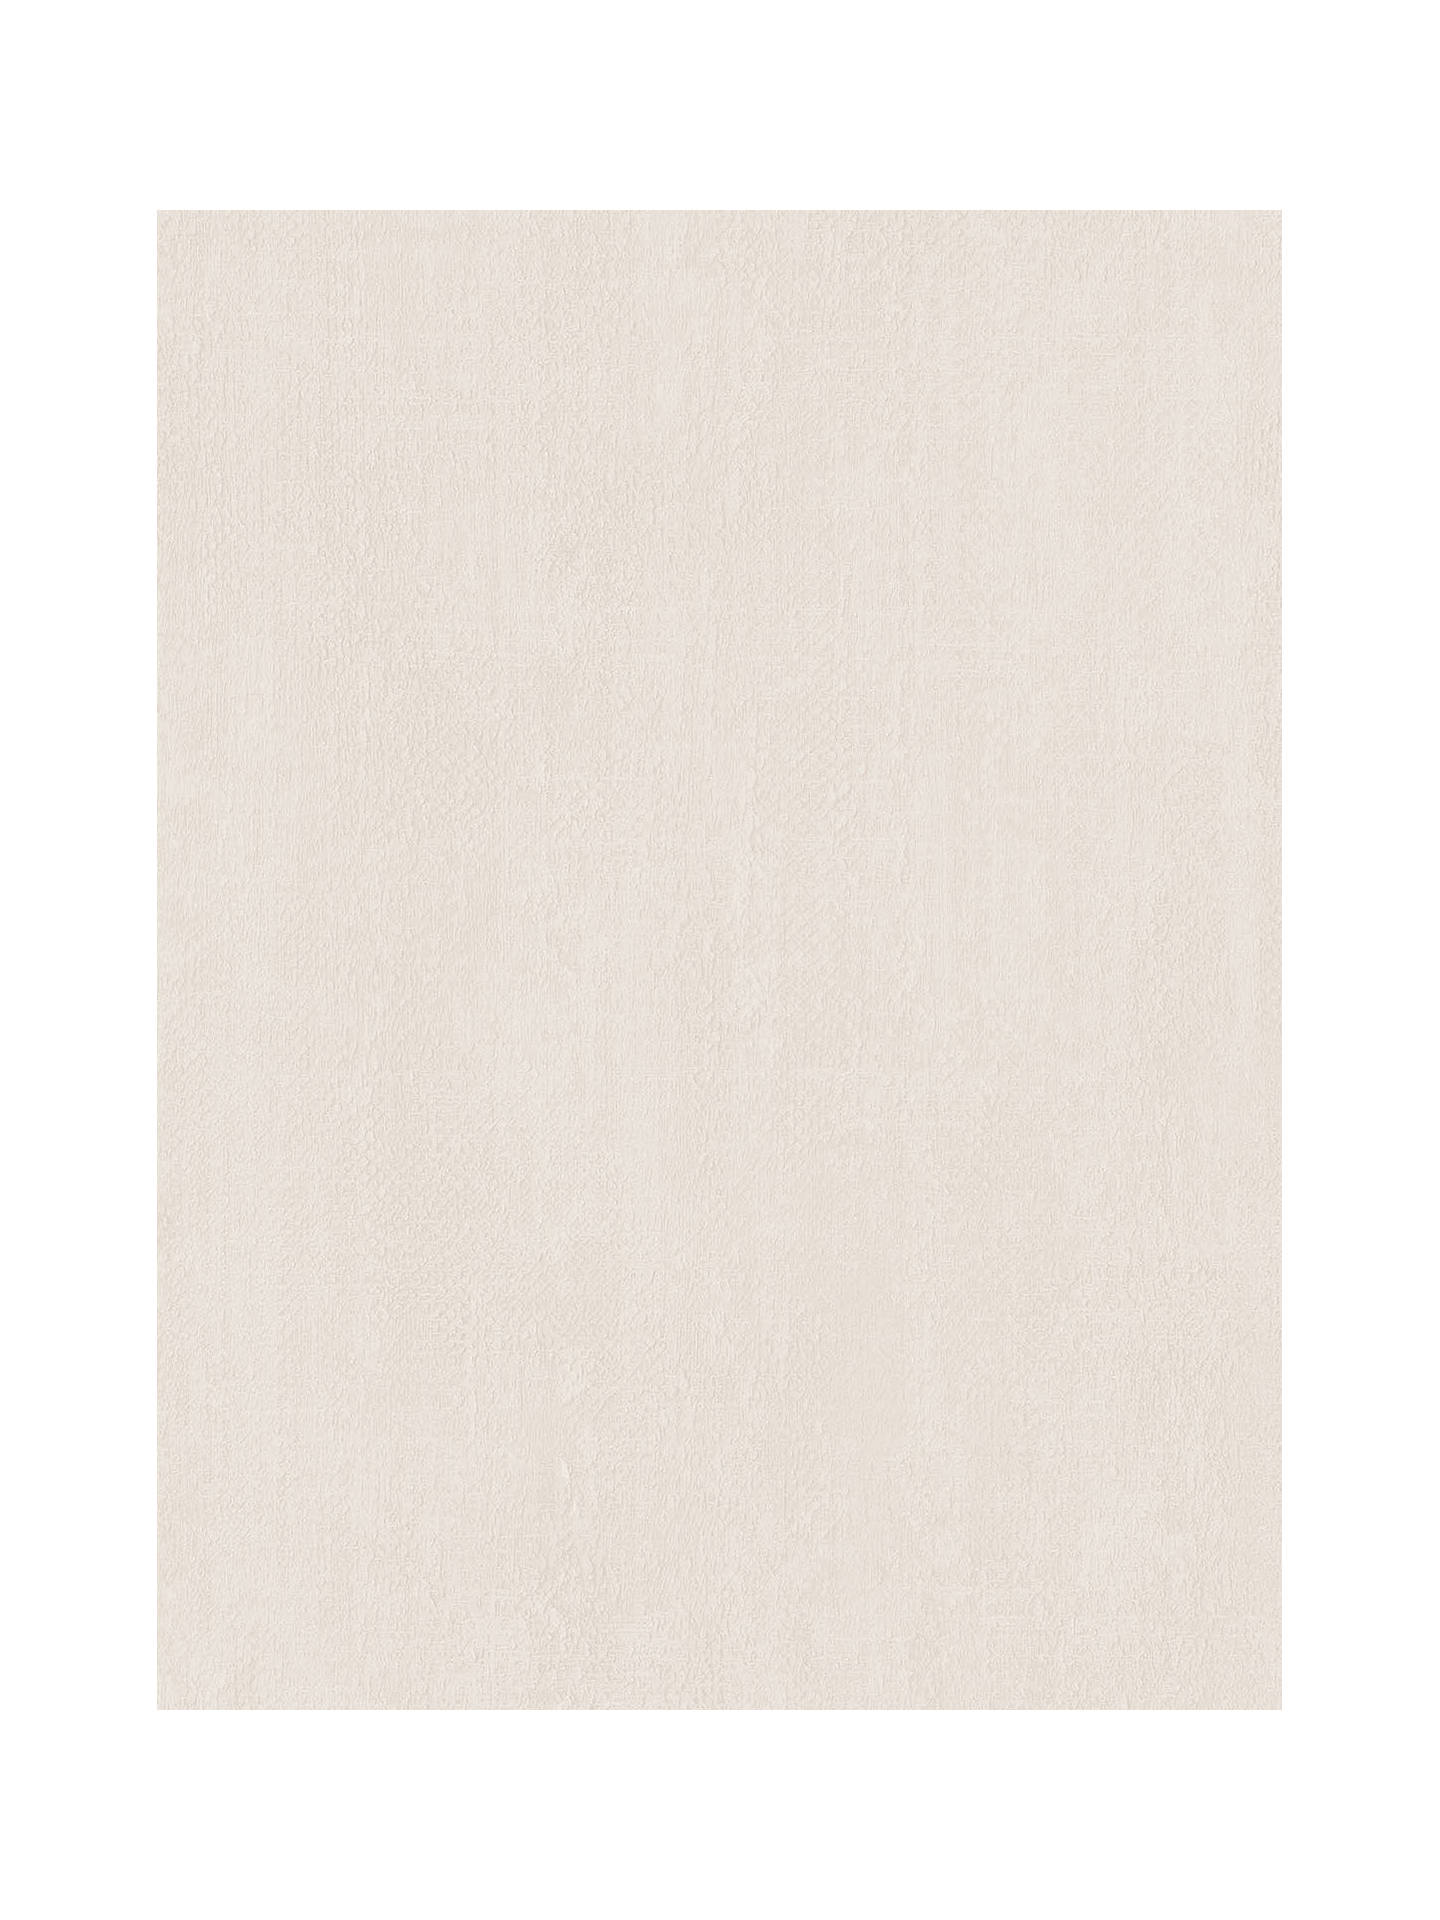 Buy Galerie Tip Texture Wallpaper, G67816 Online at johnlewis.com